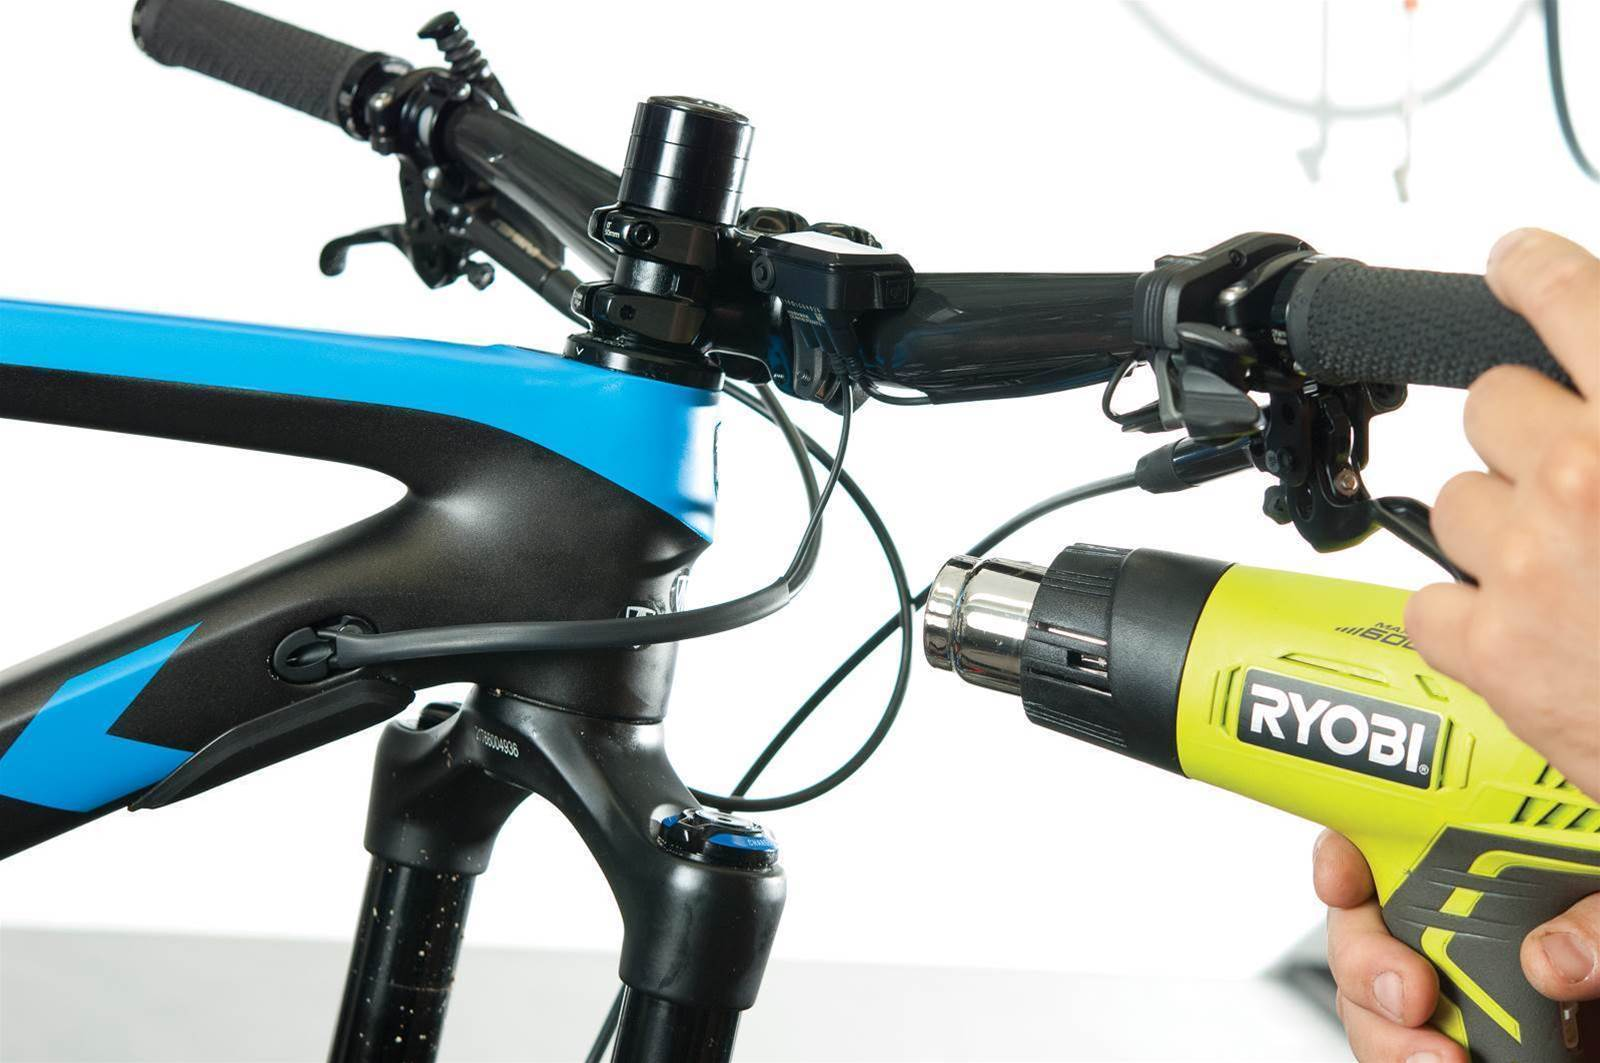 WORKSHOP : Shimano Di2 setup tips